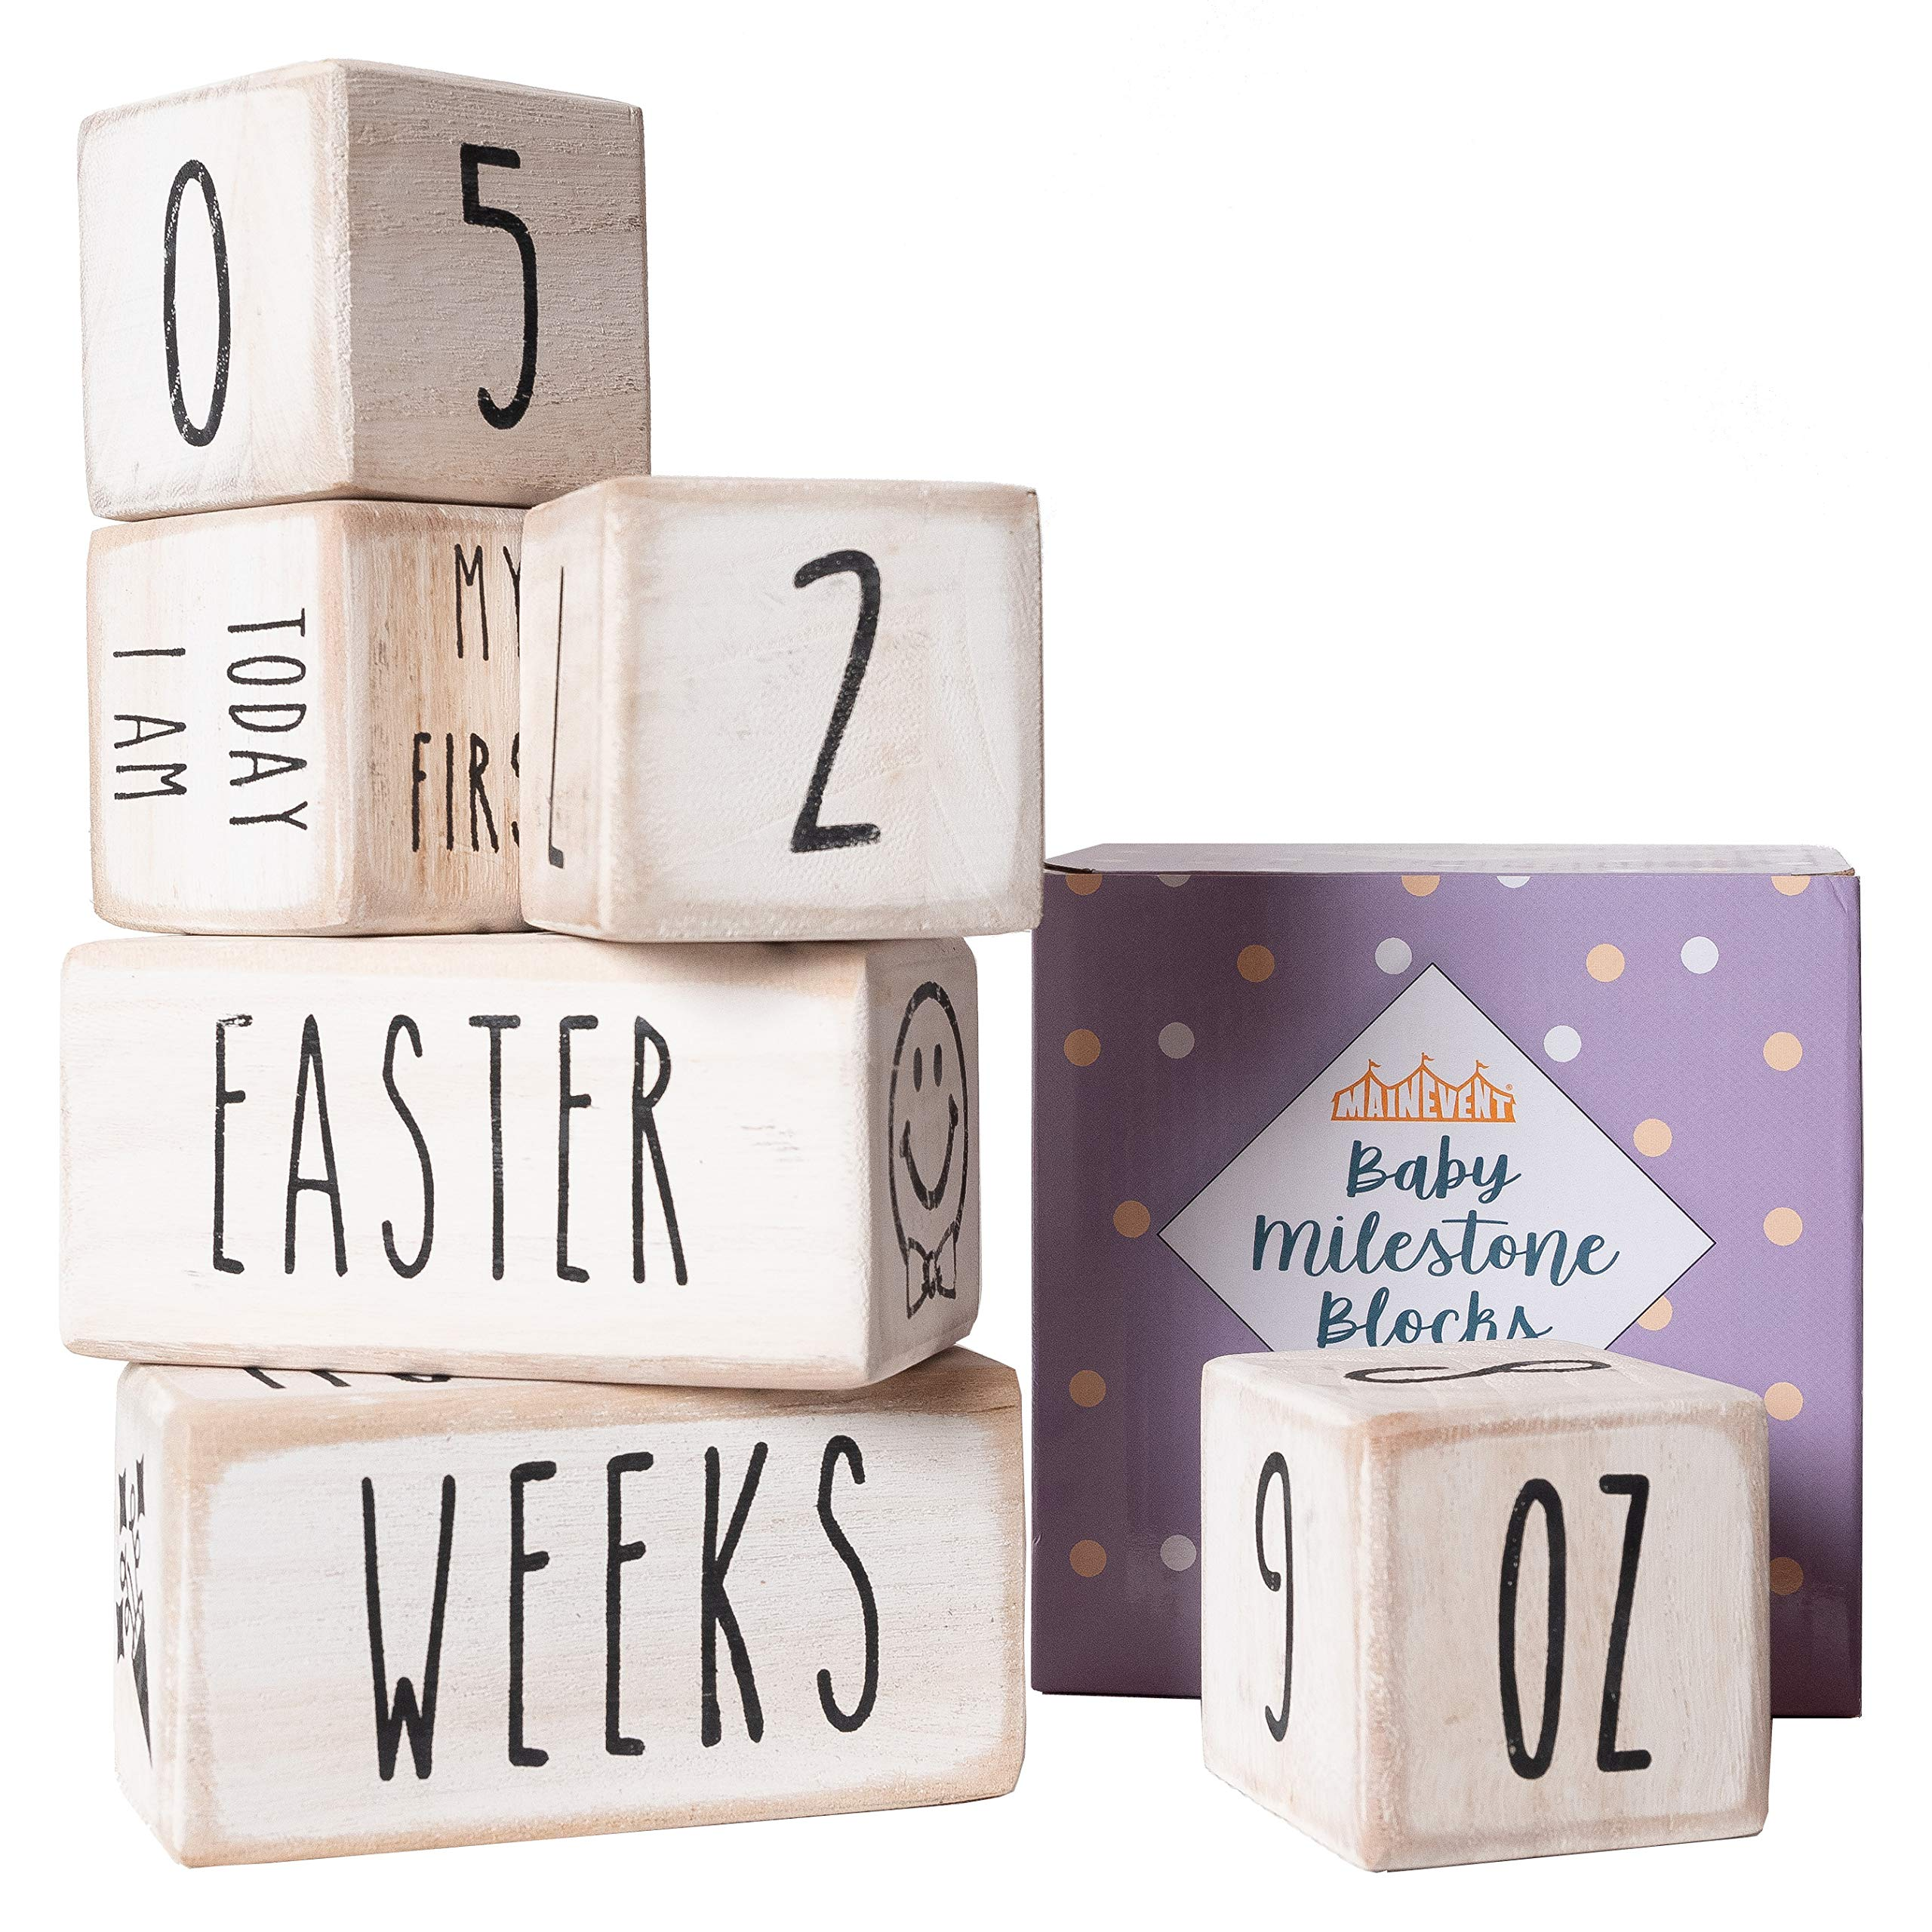 Baby Monthly Milestone Blocks - 6 Blocks, The Most Complete Set, Baby Photography Props for Social Media, Rustic Baby Nursery Decor (White) by MAINEVENT